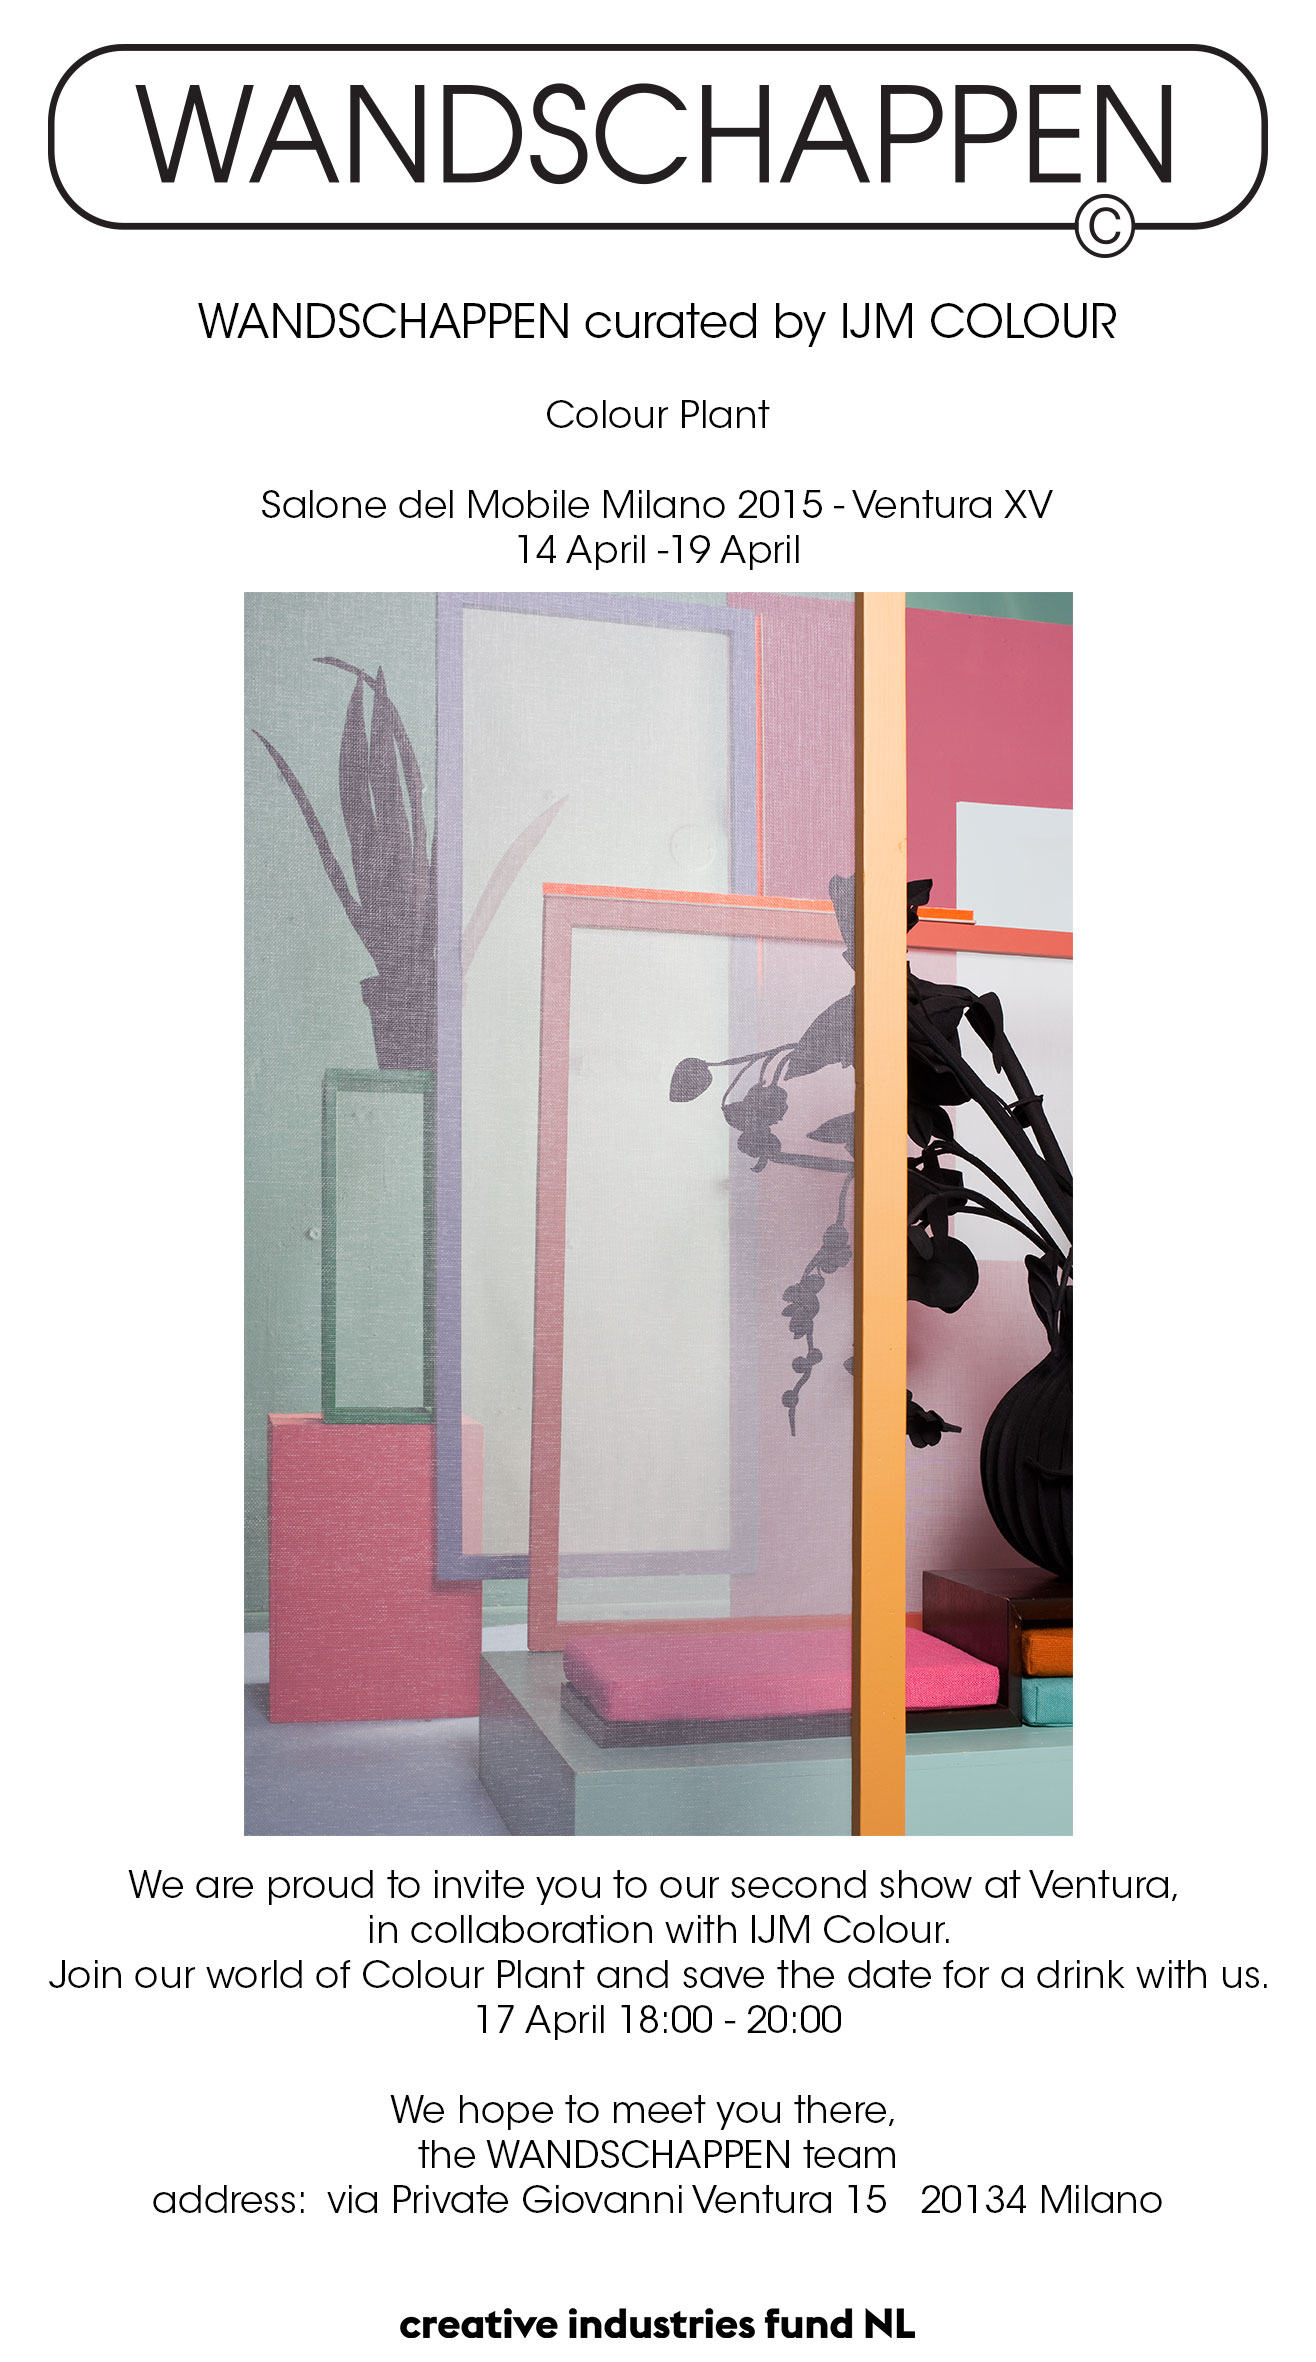 Salone del mobile milano 2015 wandschappen webshop for Salone del mobile lambrate ventura